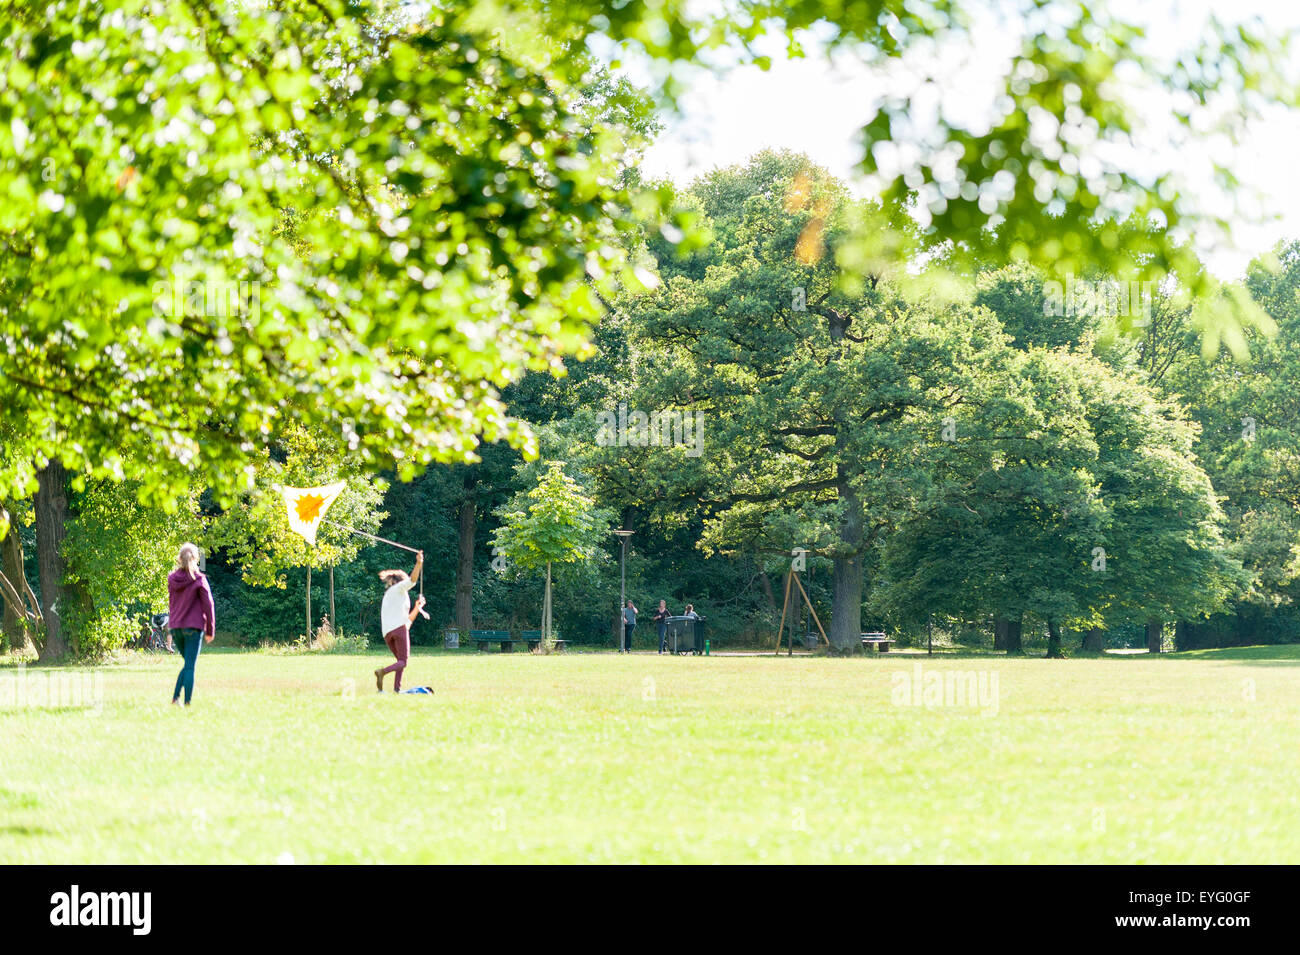 Girls fly a kite in the park - Stock Image